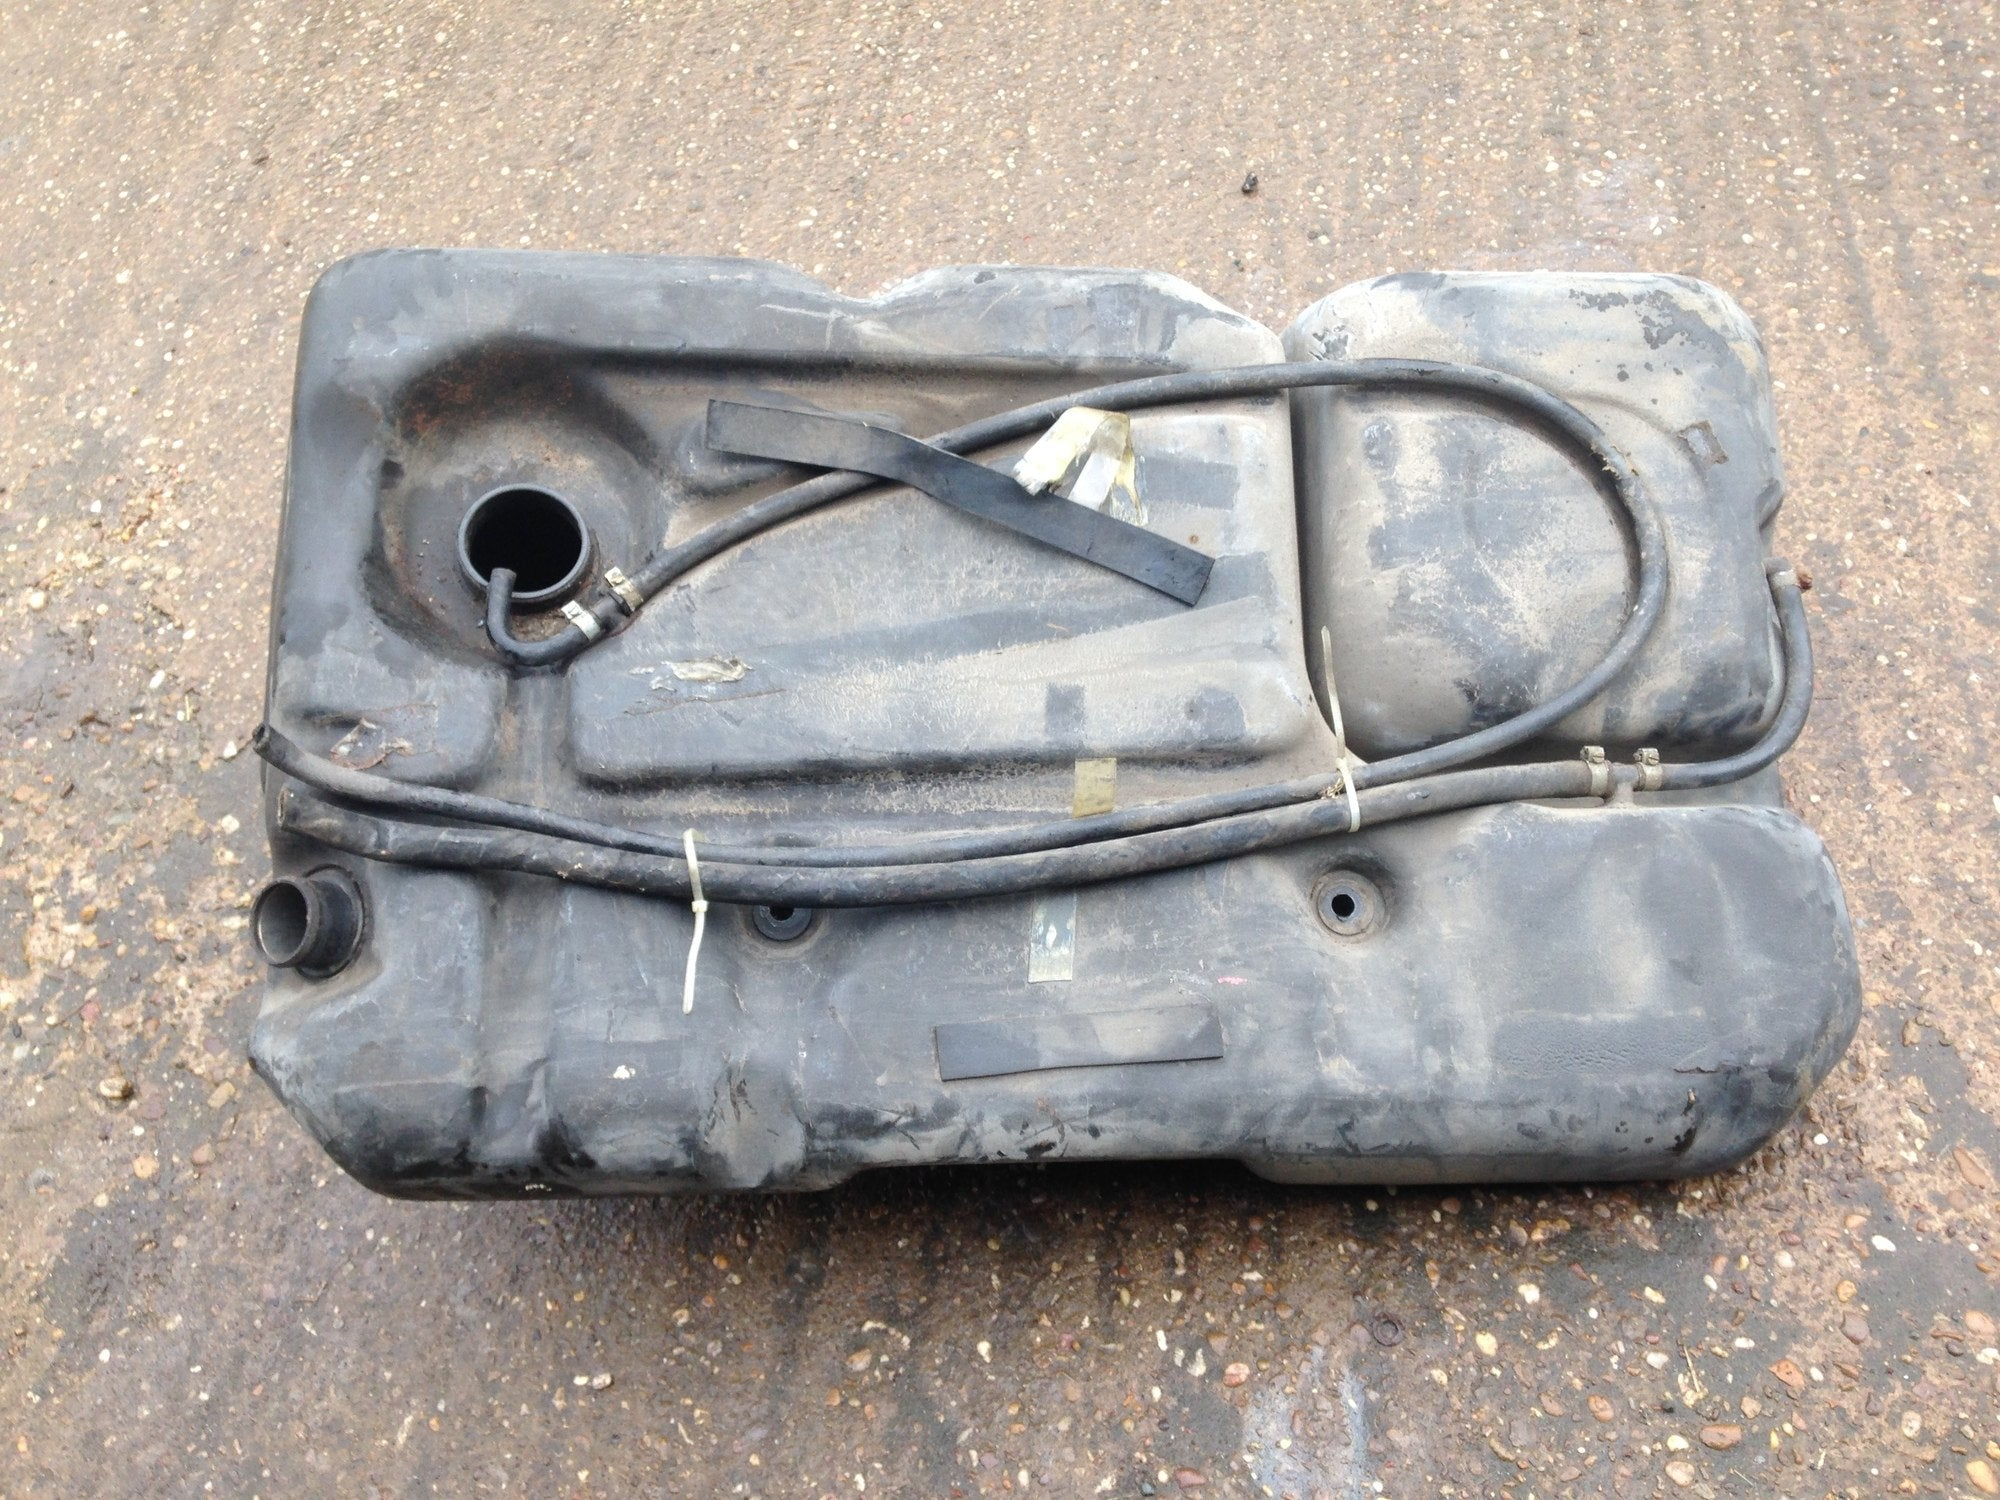 Porsche 944 86-92 plastic  fuel tank 951 201 021 01 (T/oak) USED - Woolies Workshop - Porsche 924 944 spares